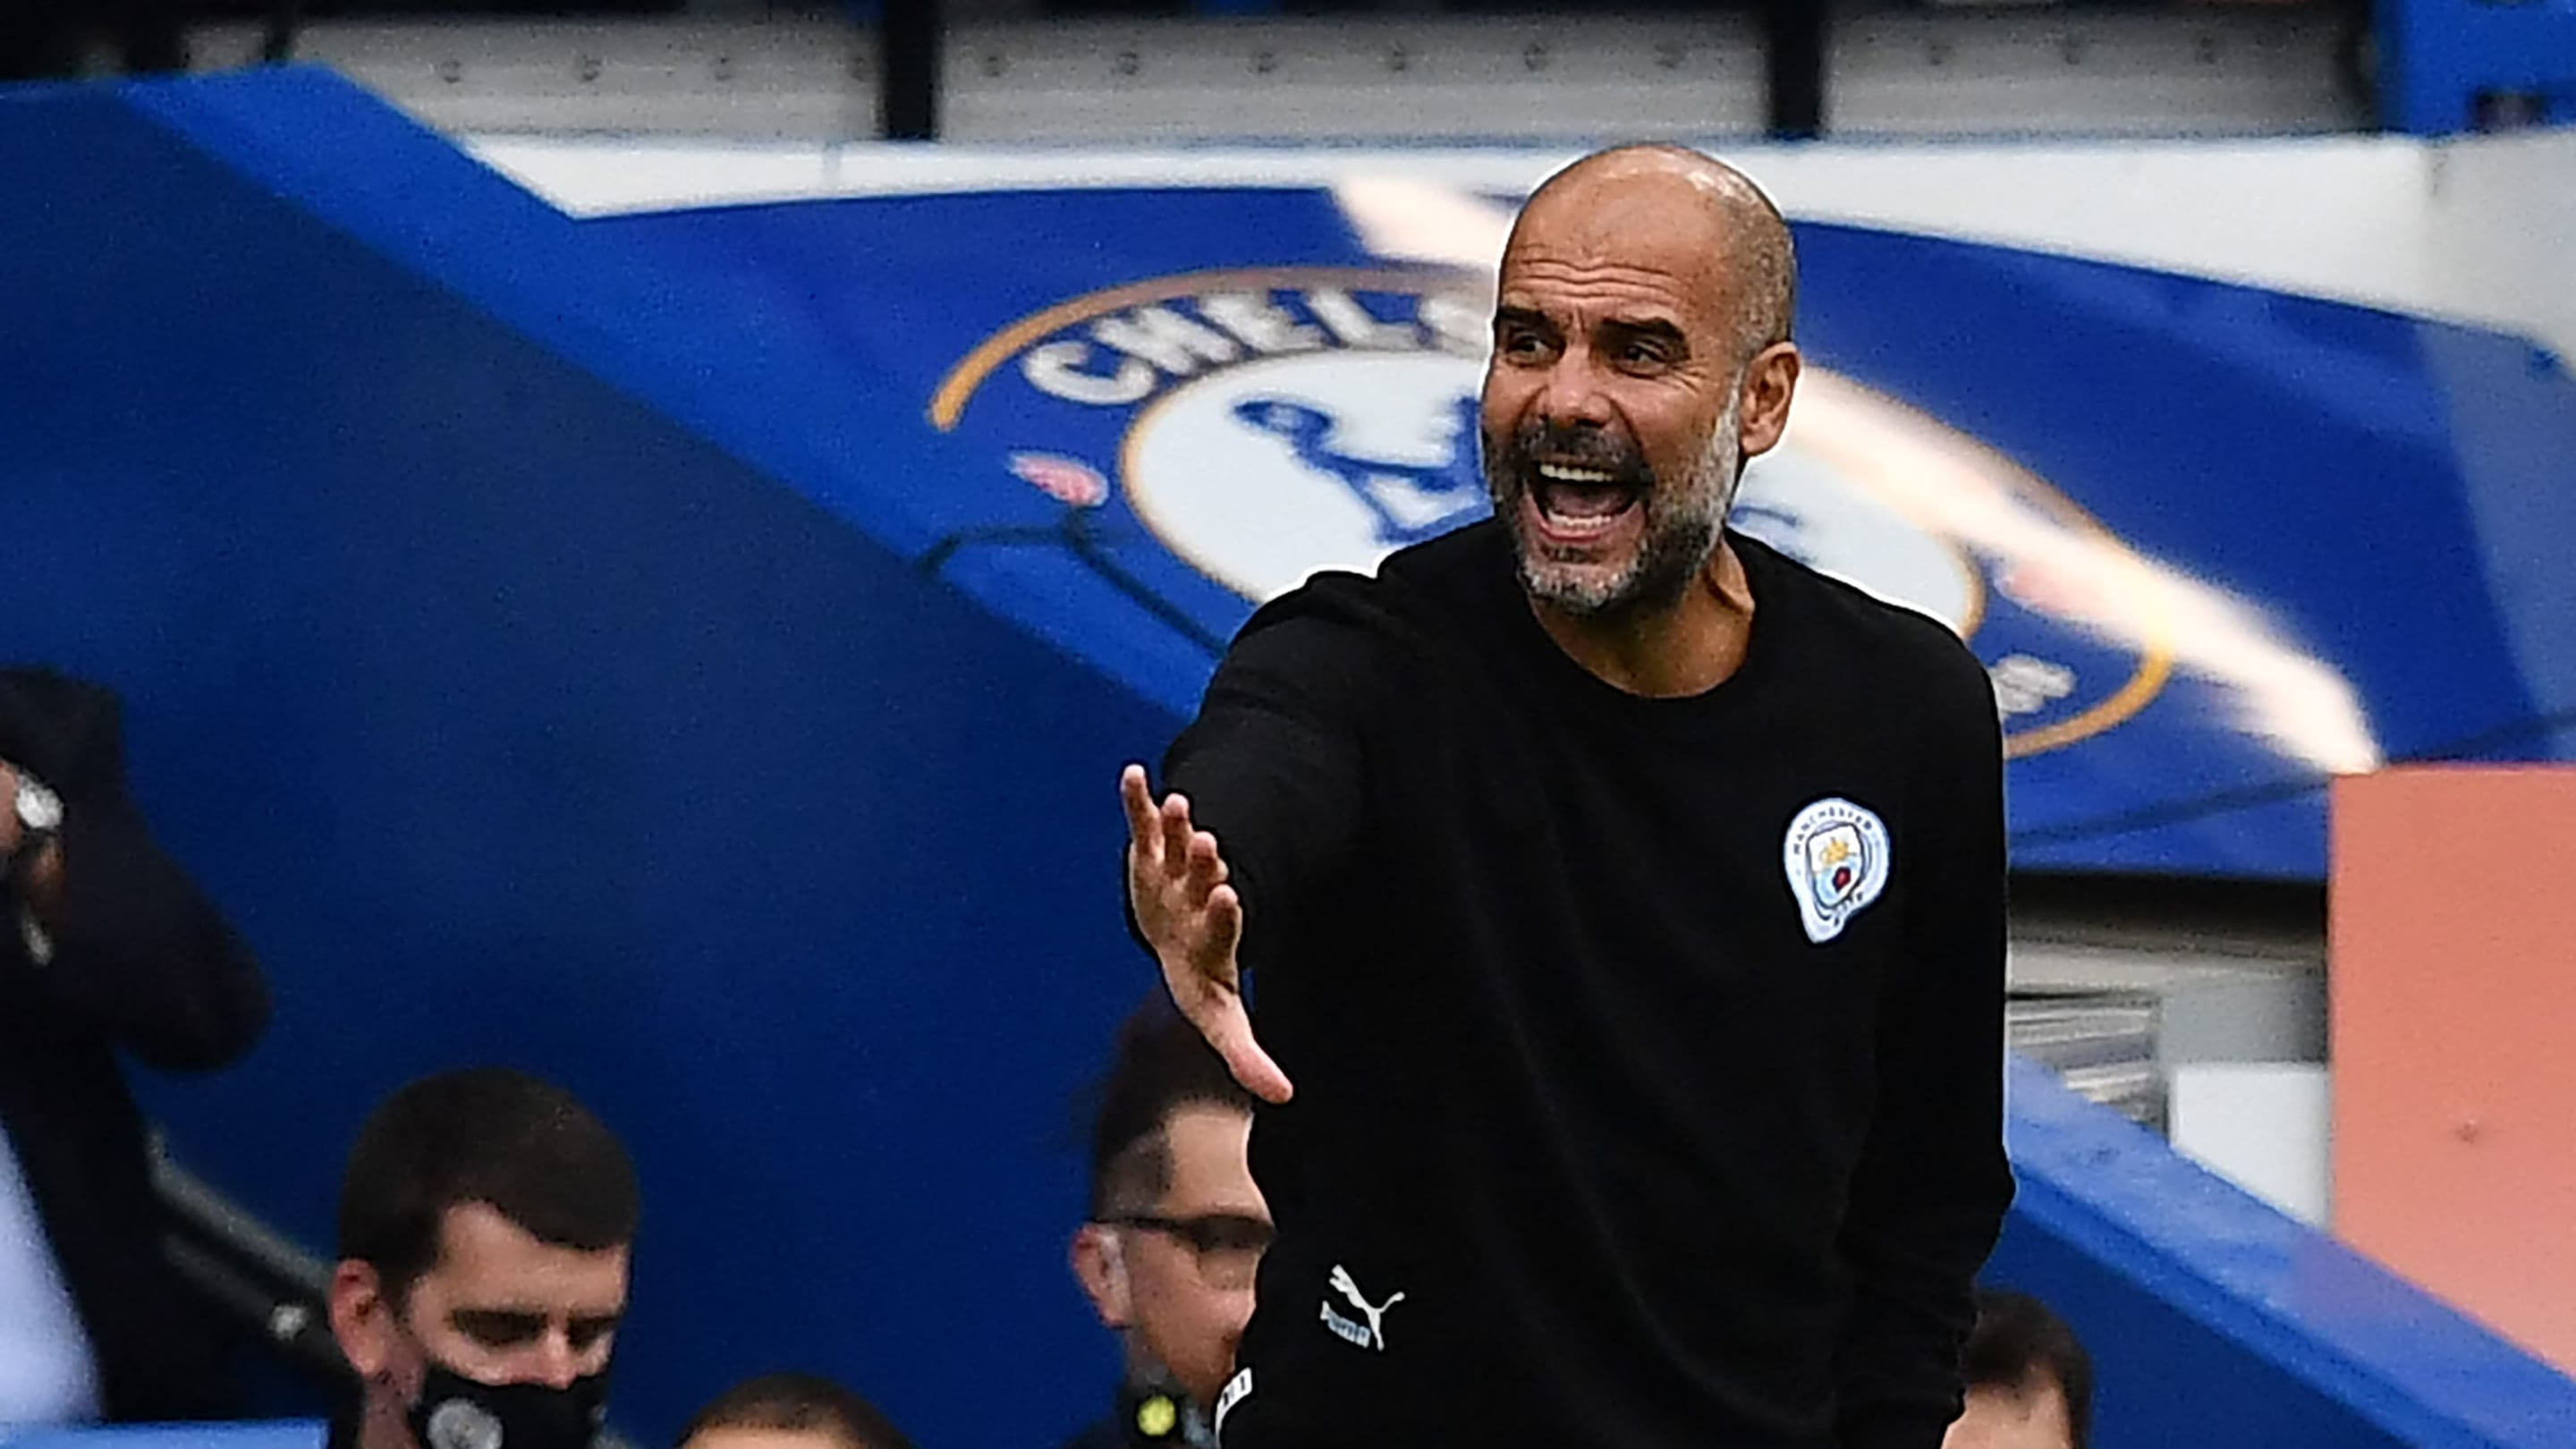 Pep Guardiola 'proud' to become Man City's most successful manager